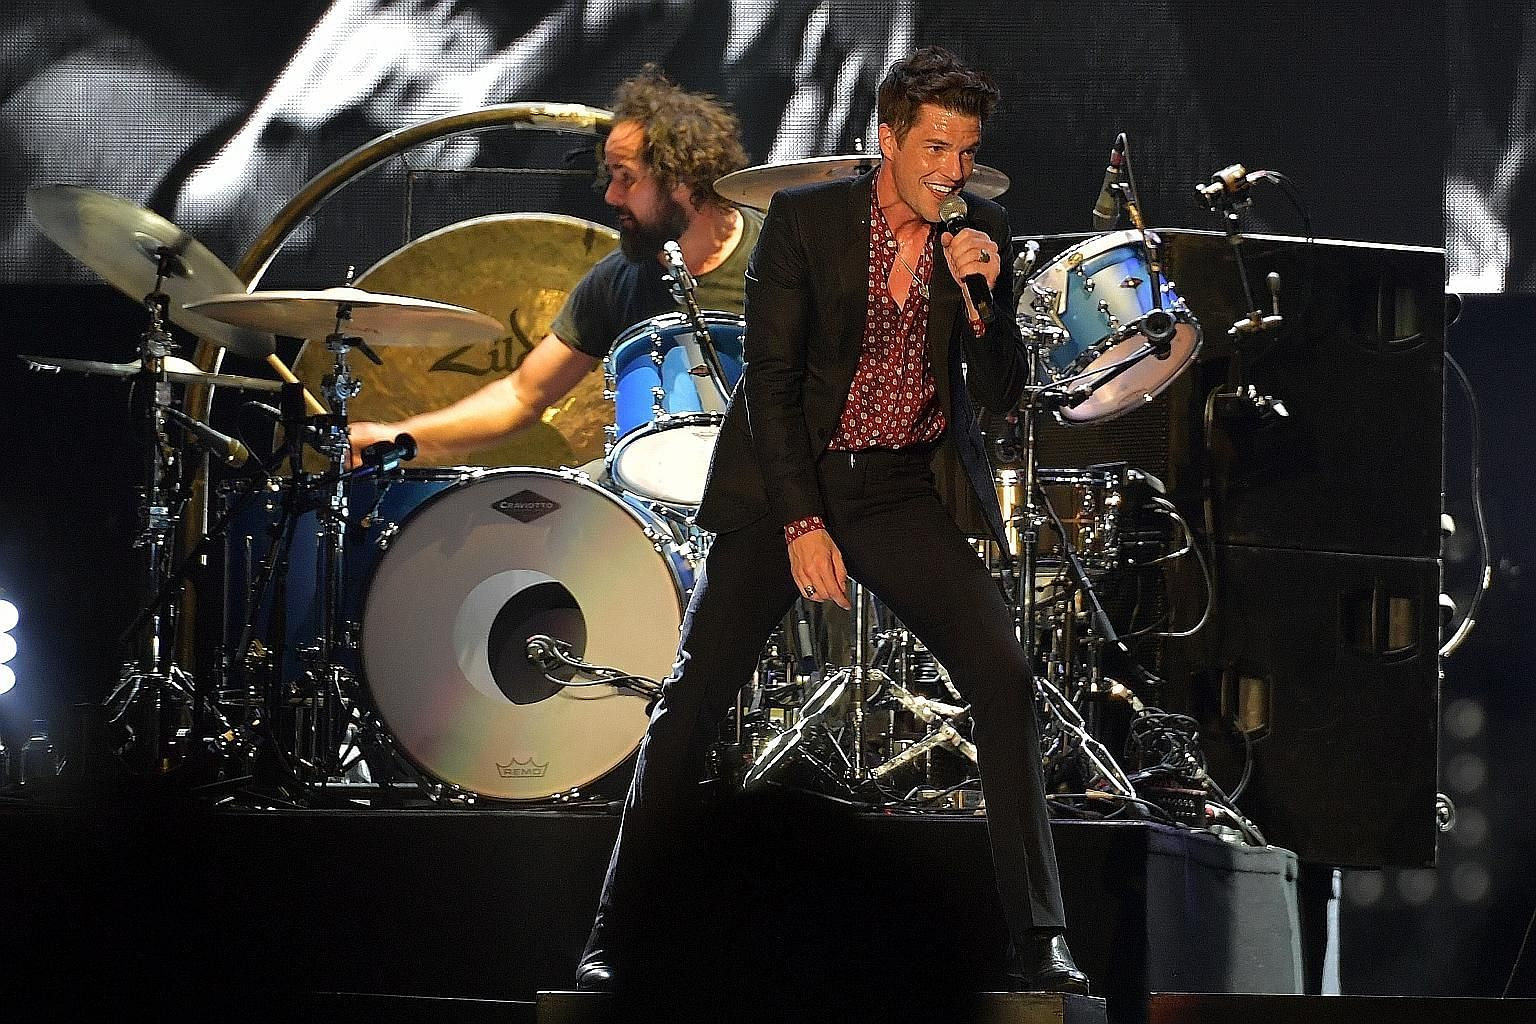 Brandon Flowers (above) of American band The Killers and British singer and ex-Oasis frontman Liam Gallagher (left) at their gigs over the weekend.